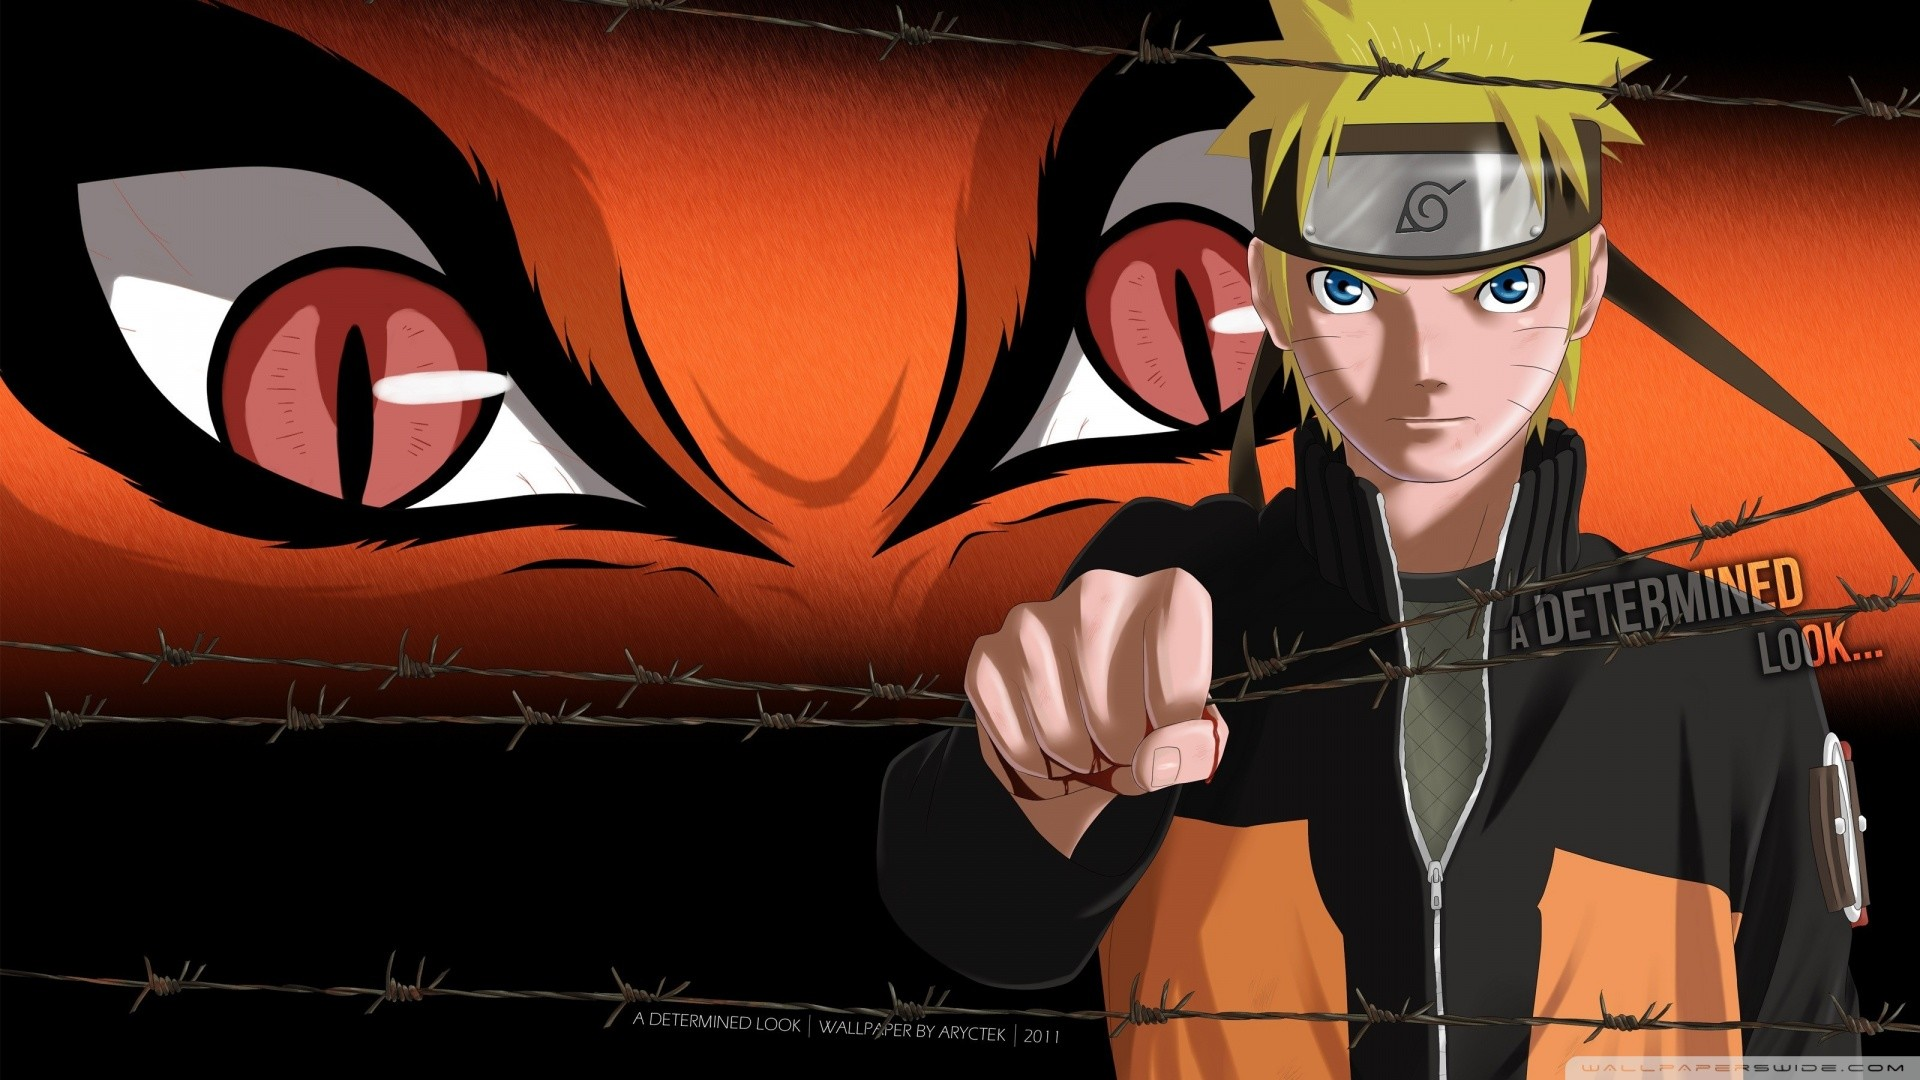 Naruto Shippuden HD Wallpapers 69 Images